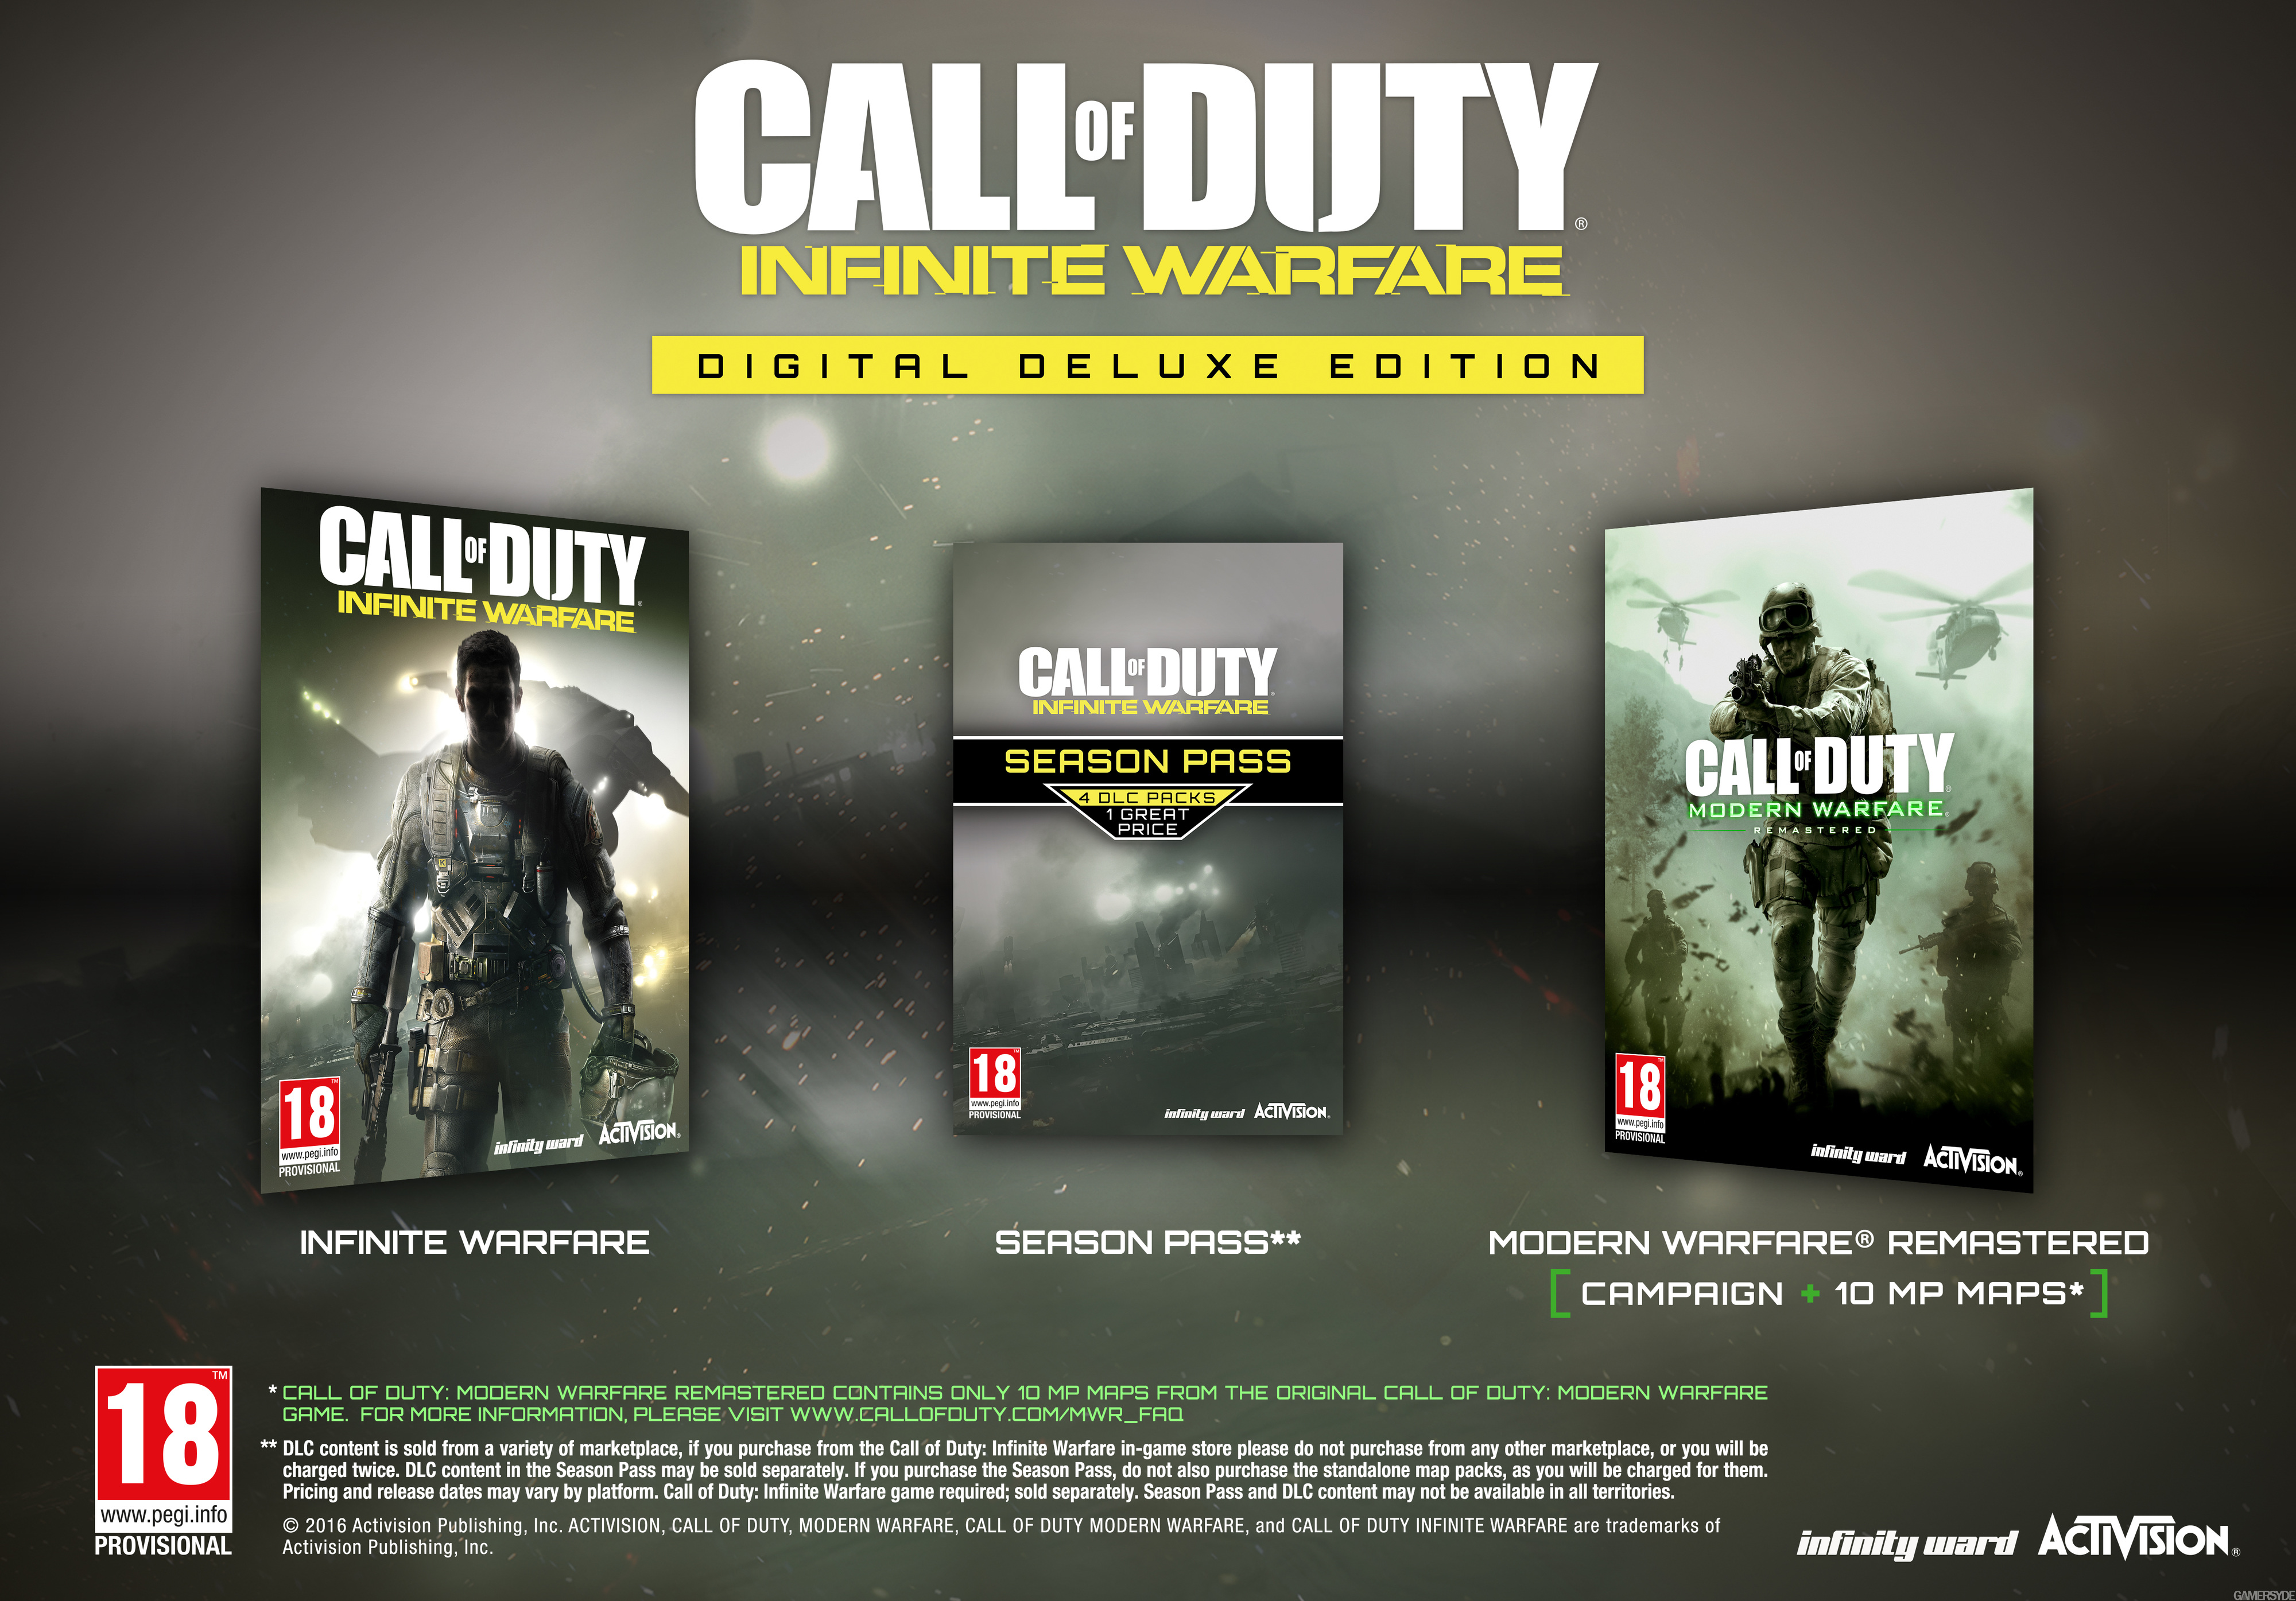 http://images.gamersyde.com/image_call_of_duty_infinite_warfare-31655-3583_0001.jpg